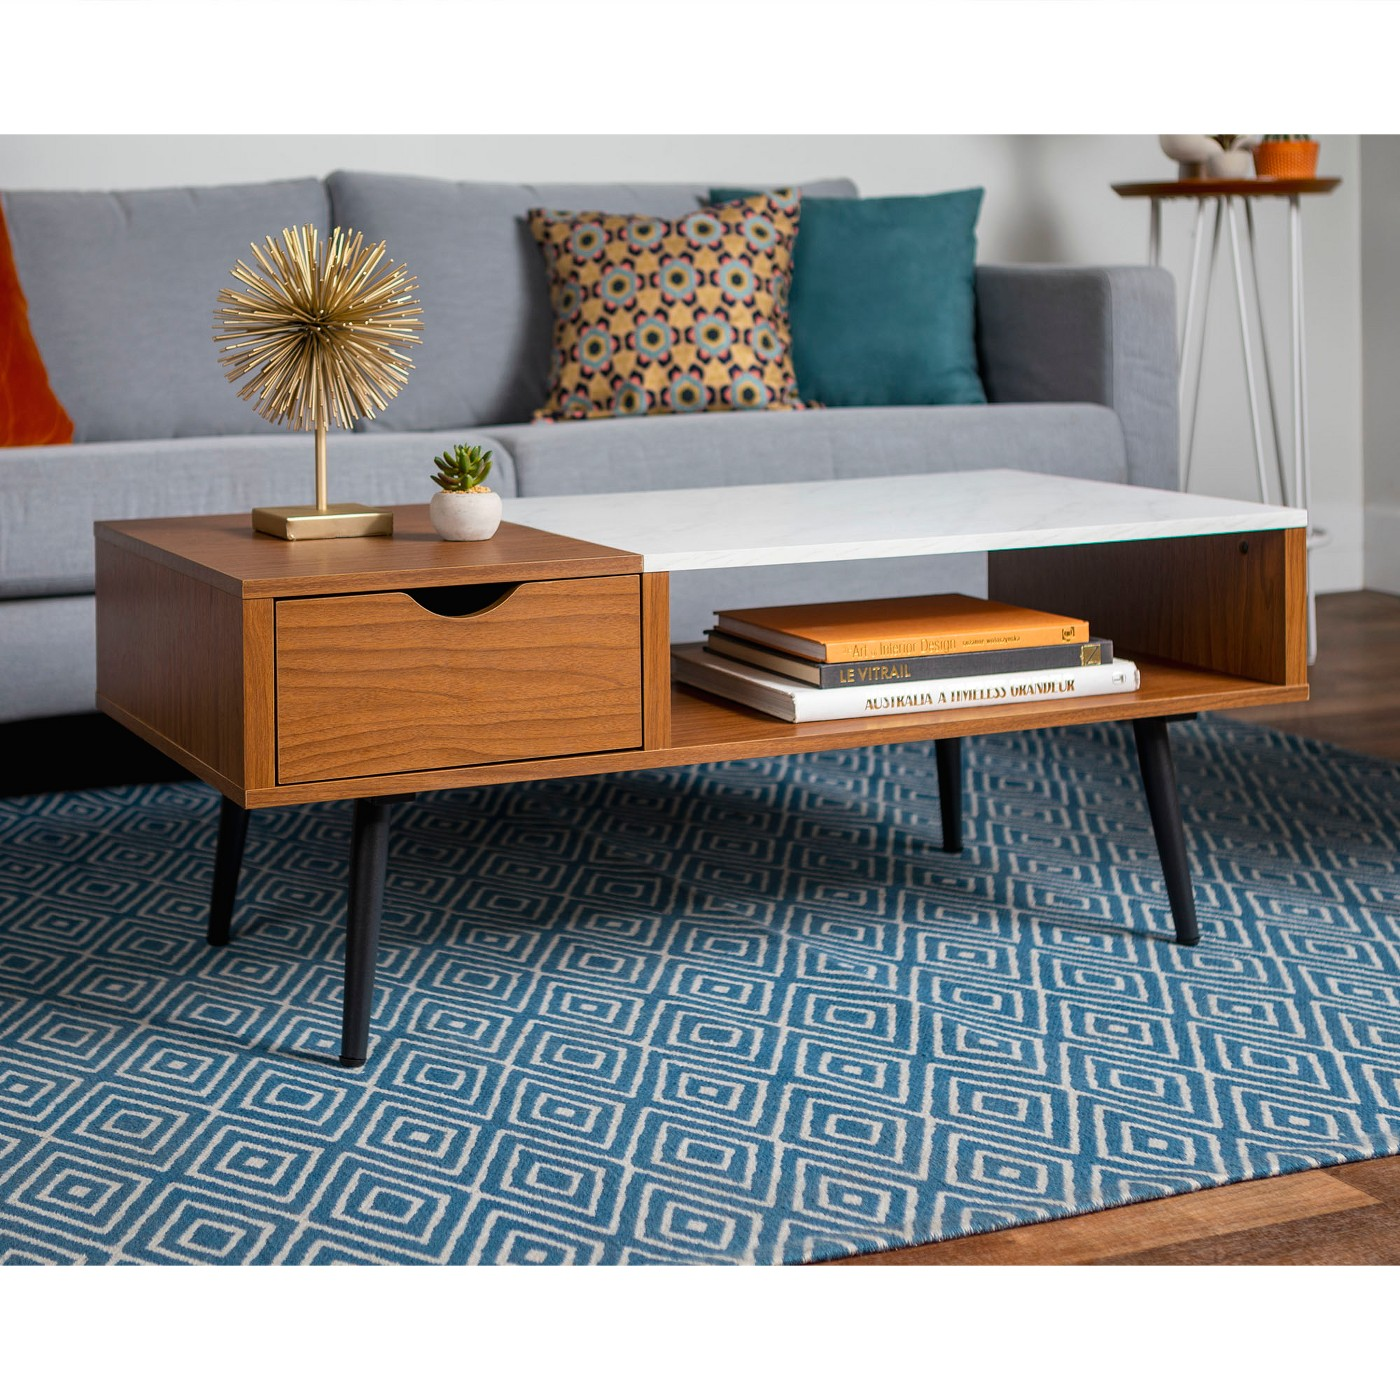 coffee tables target home that complete your guest tachuri geometric front accent table brown opalhouse living room for less white stacking kitchen furniture tall gold lamp boston